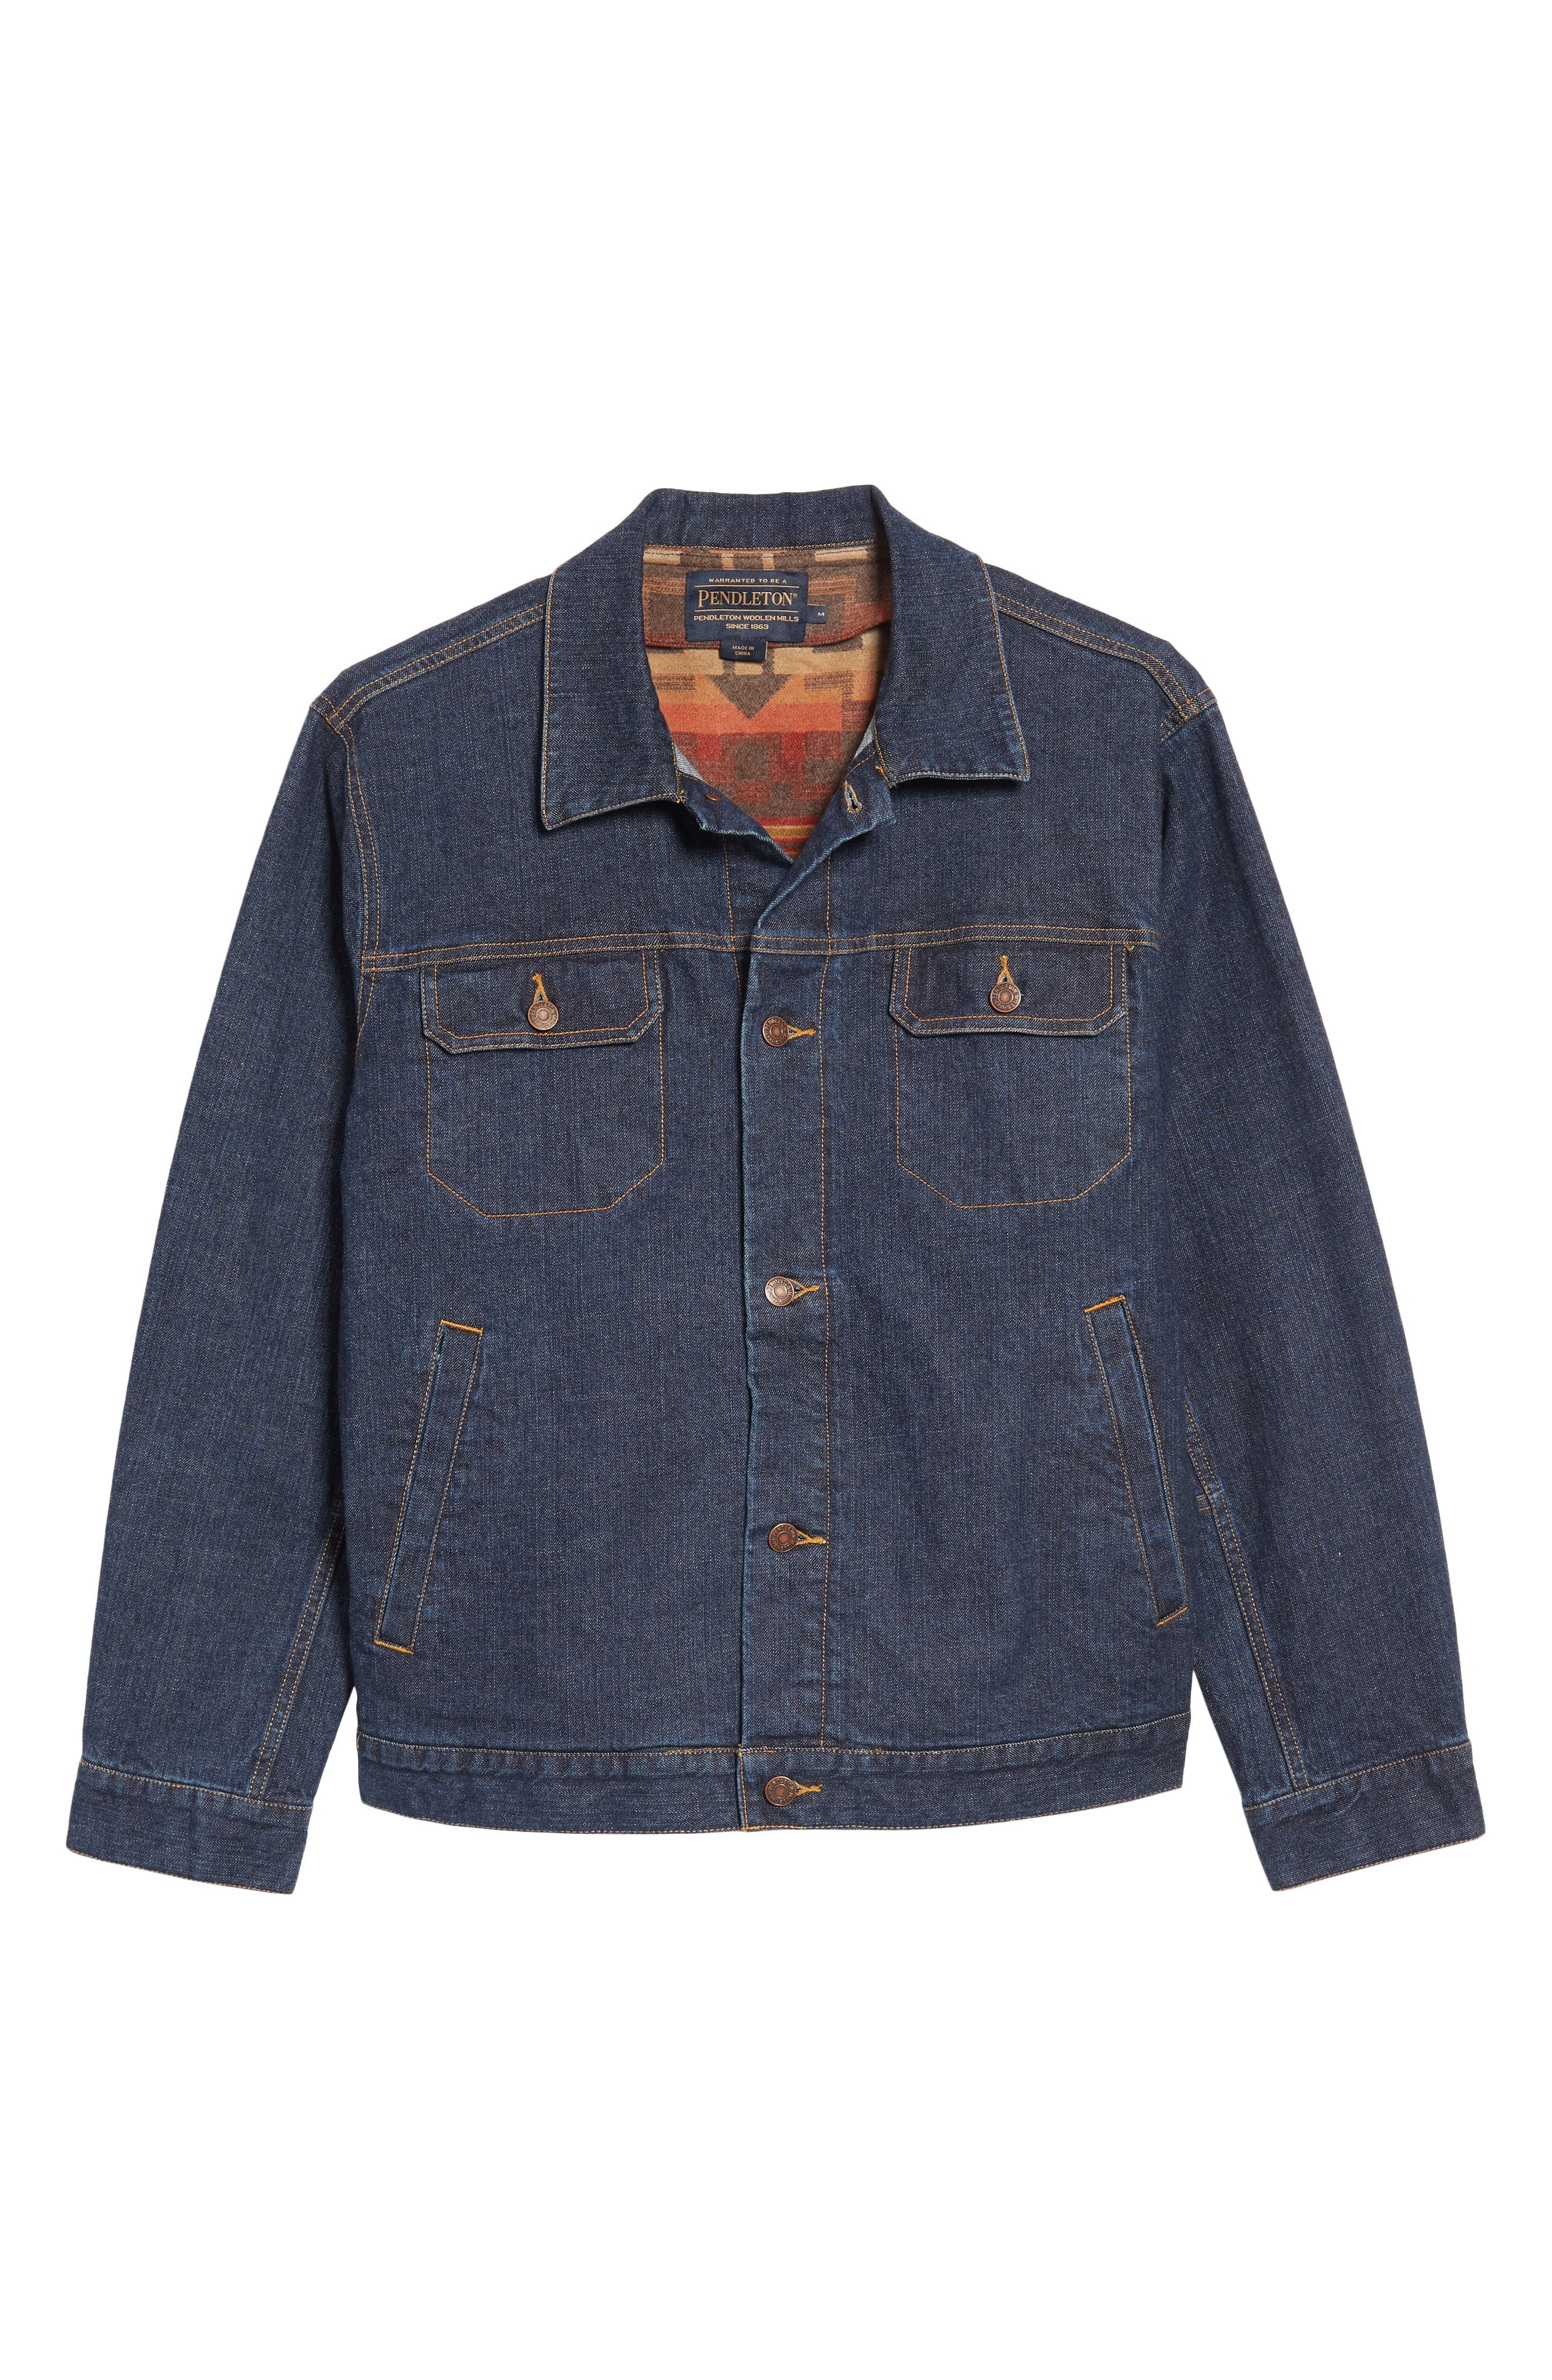 Denim Jacket with Removable Wool Vest,                             Alternate thumbnail 6, color,                             Denim With Broken Arrow Red